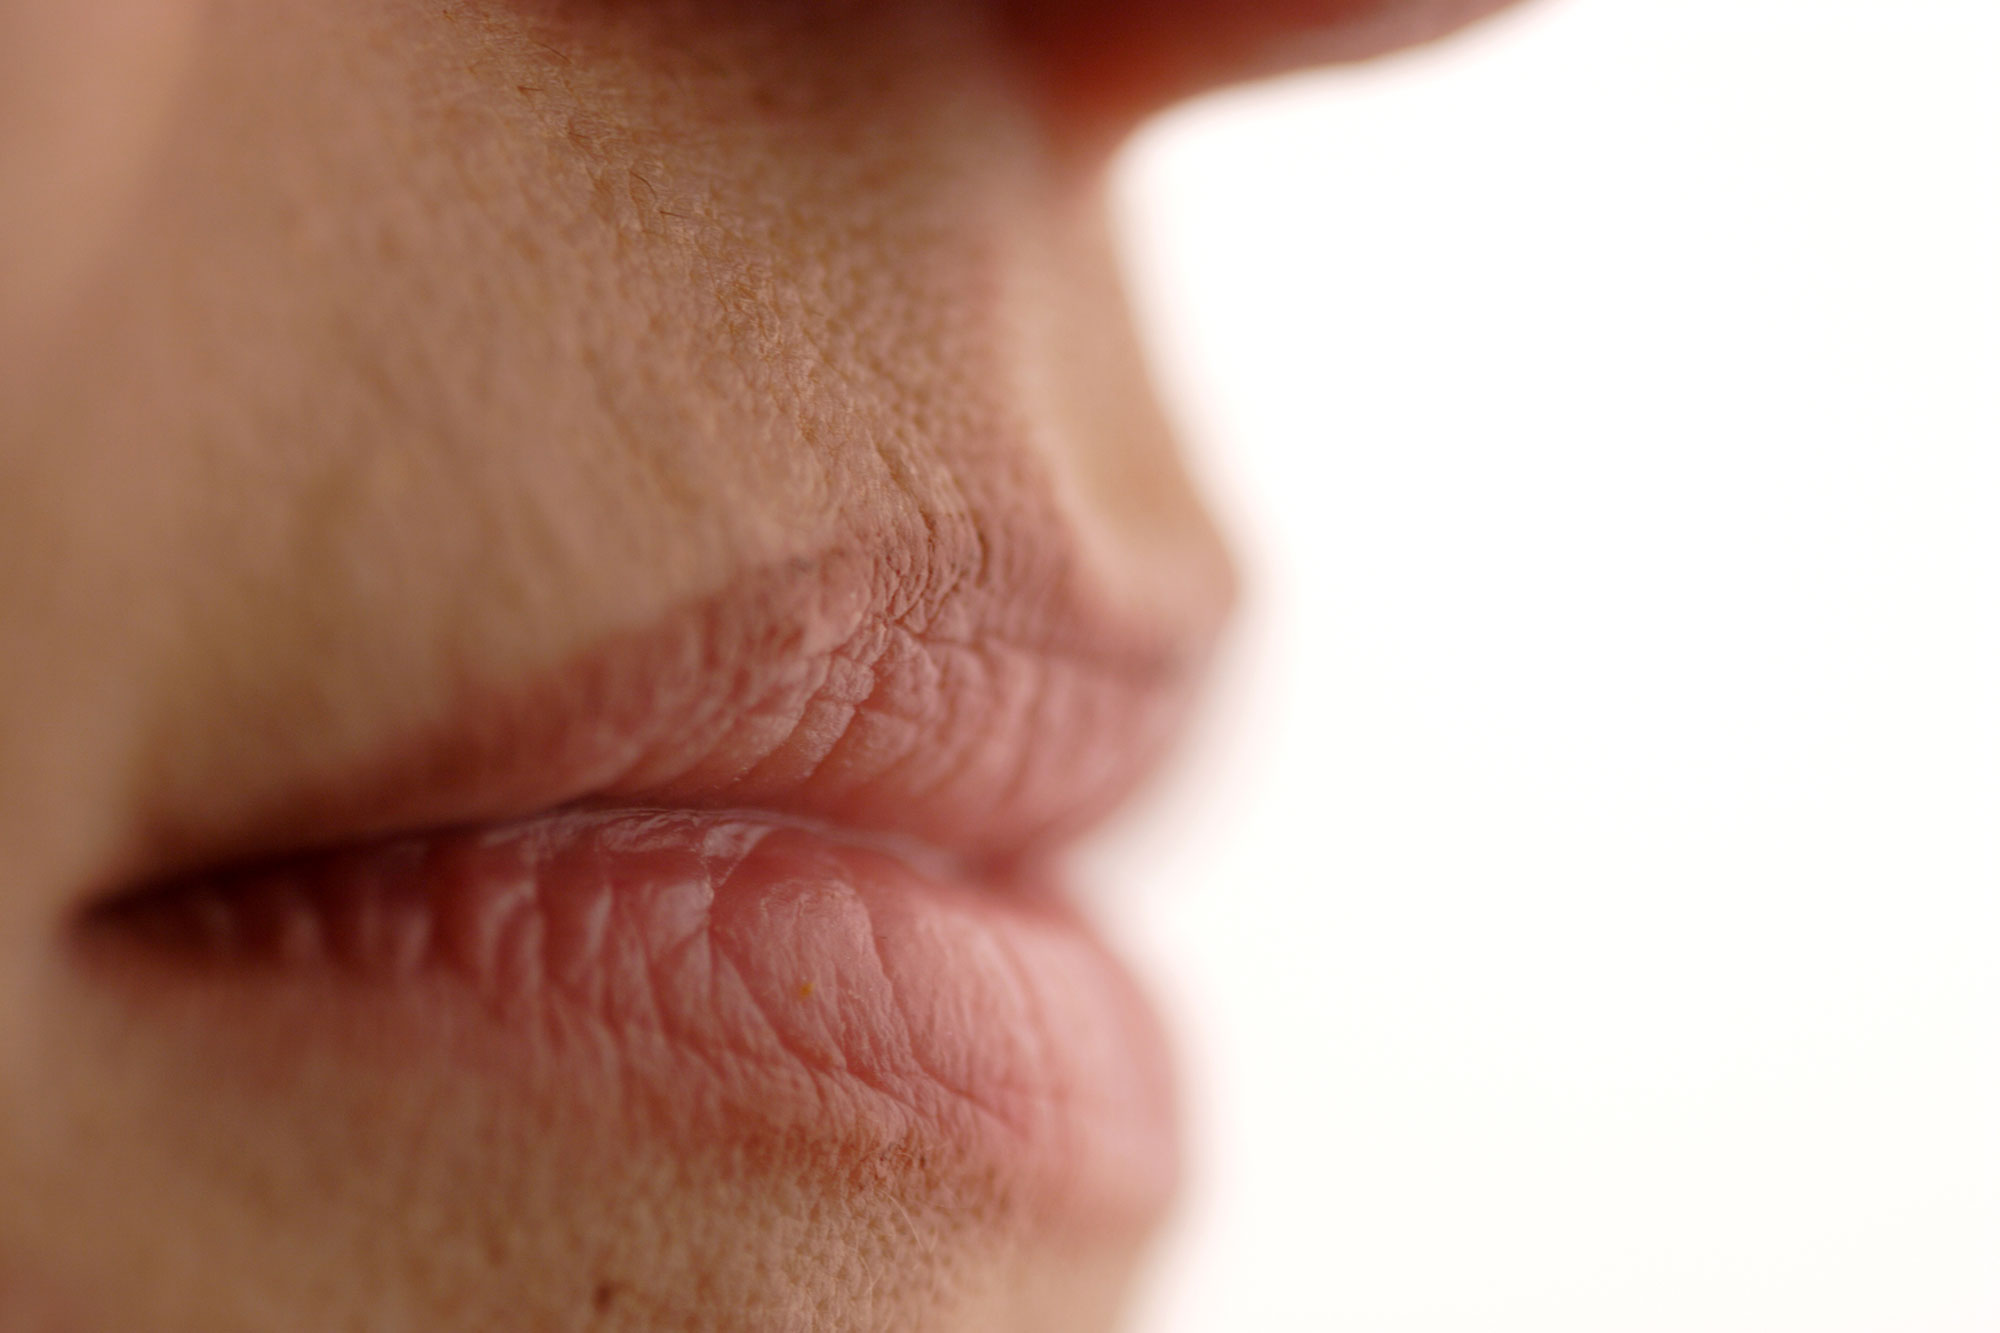 Cracks in the corners of the lips: treatment and prevention 63